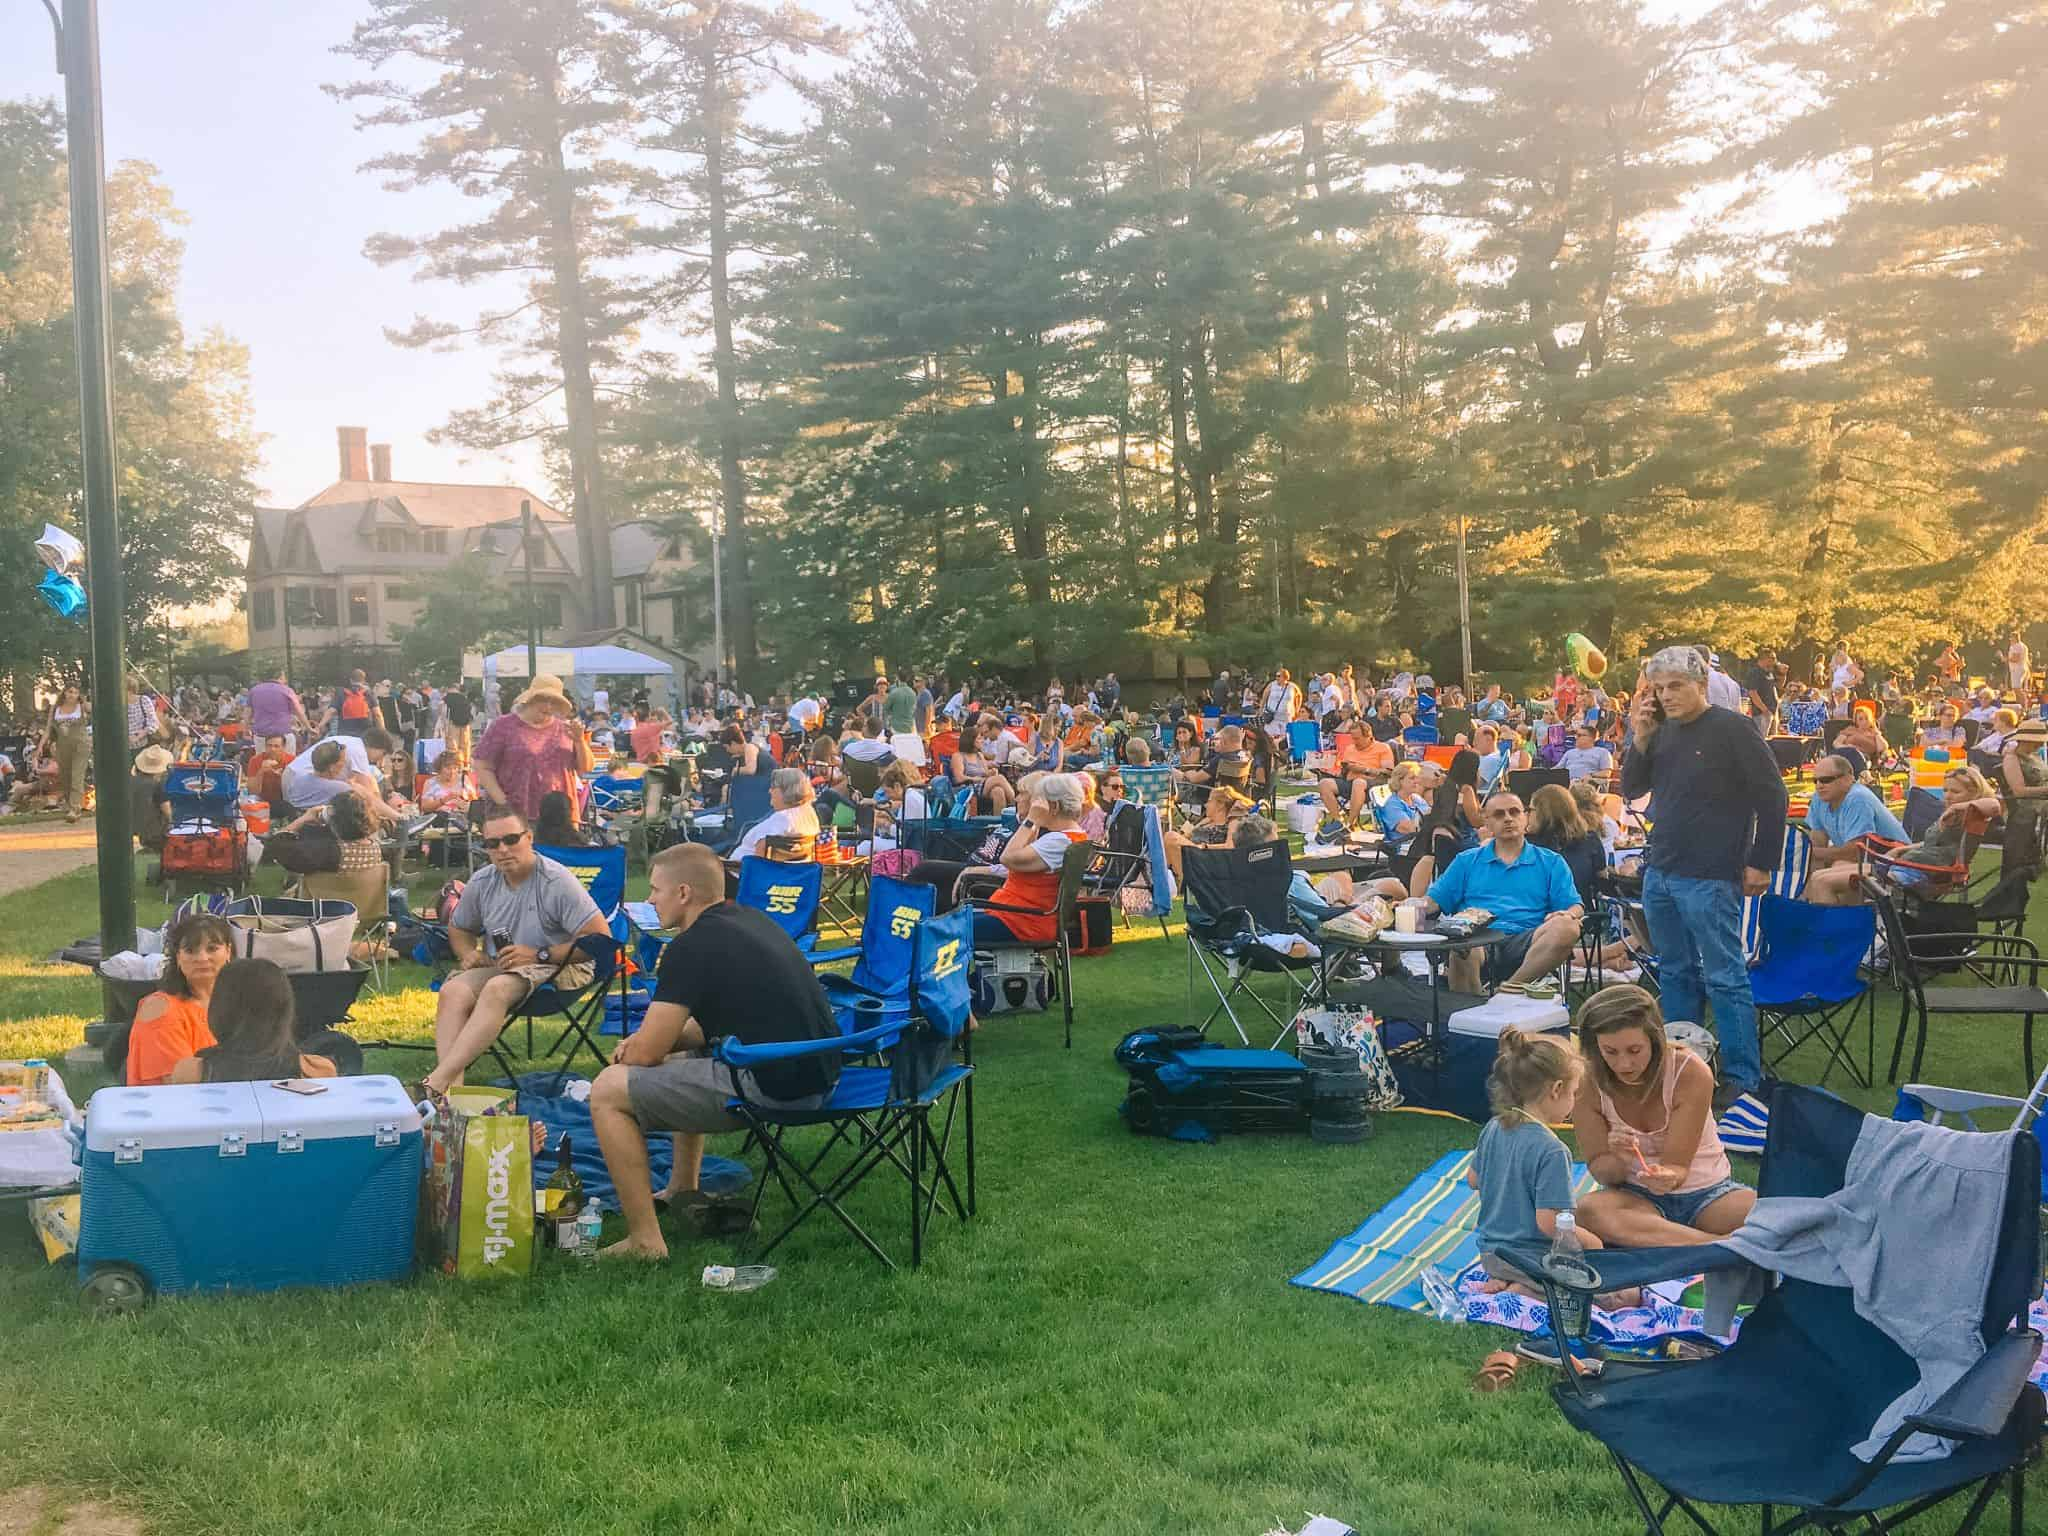 How to see James Taylor at Tanglewood